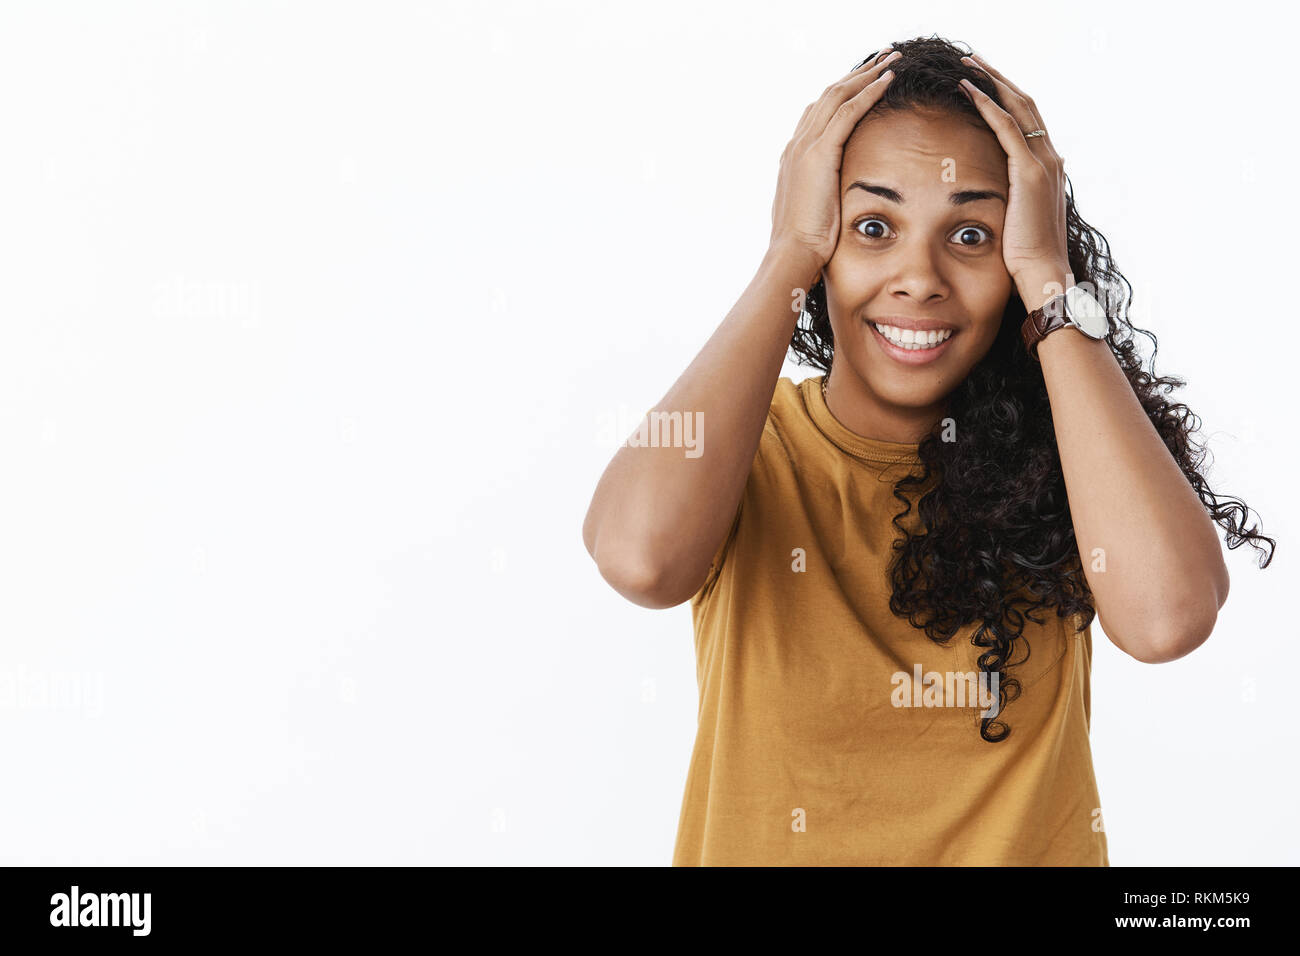 Waist-up shot of surprised happy woman reacting to unbelievable luck grabbing head with hands and smiling broadly being thrilled and excited as - Stock Image